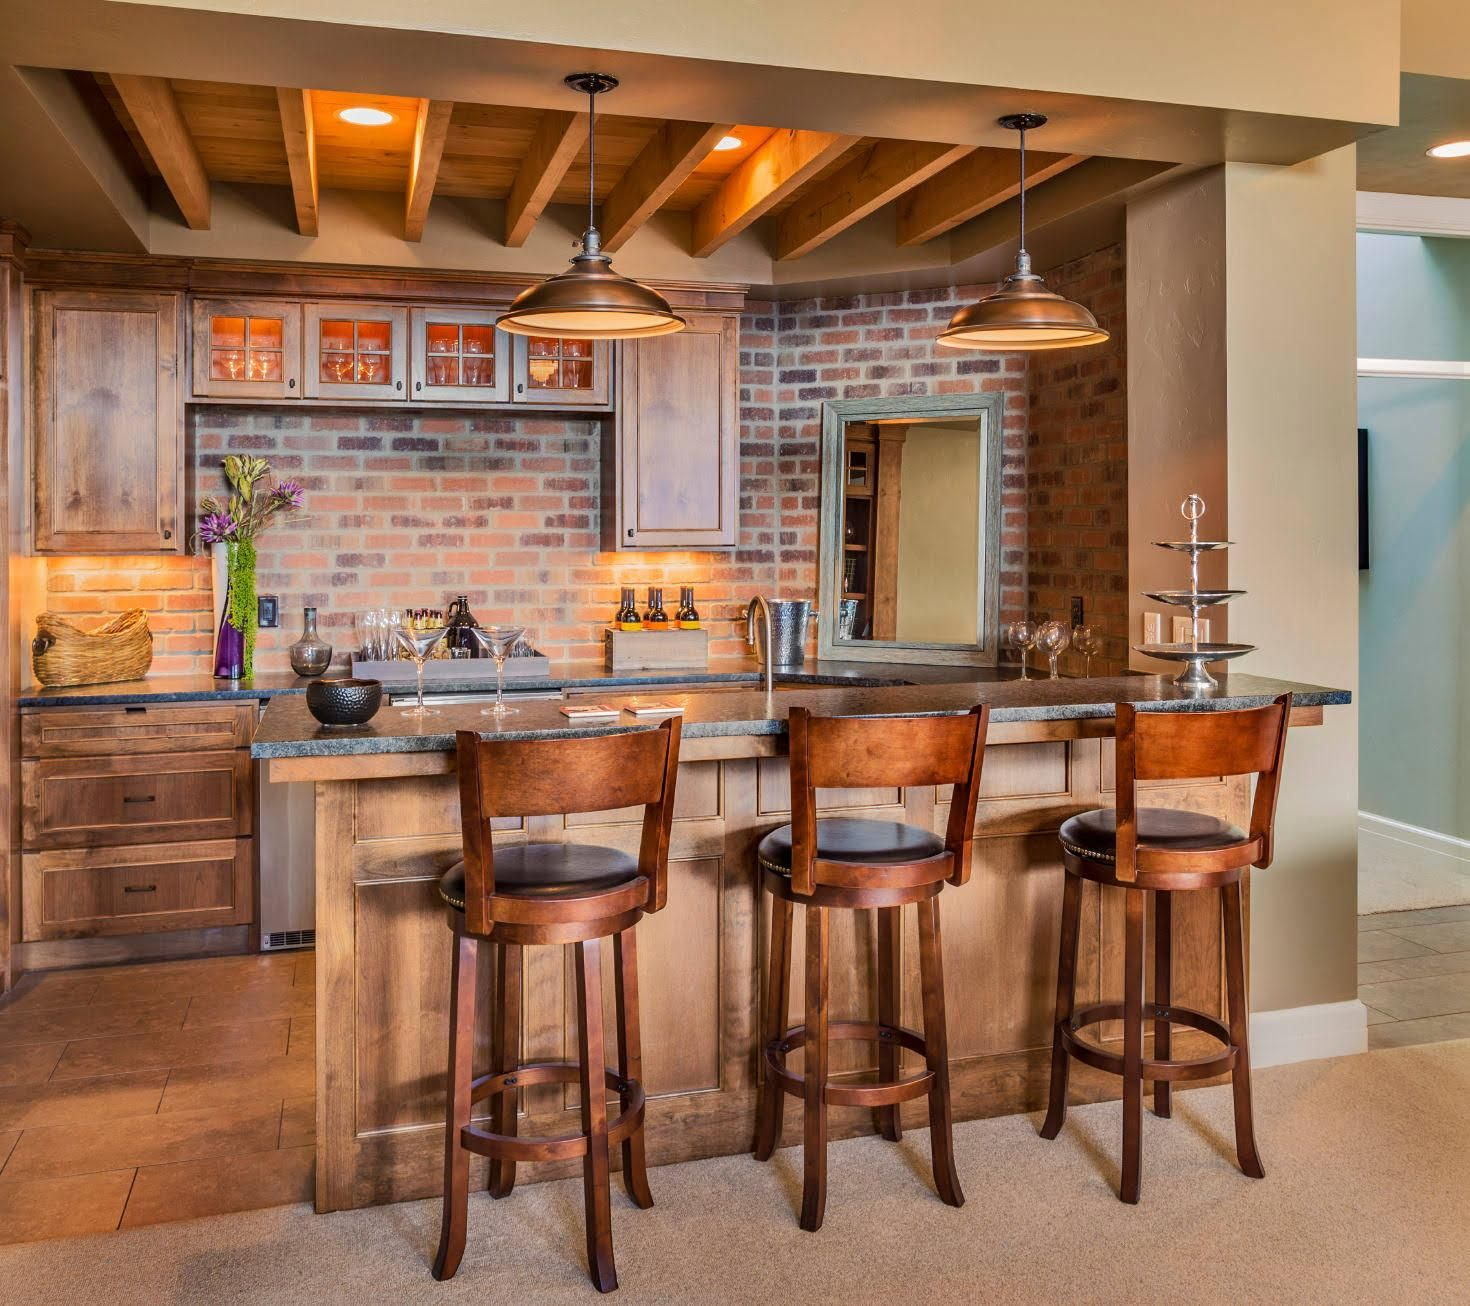 Here's A Photo Gallery Of 100's Man Cave Designs